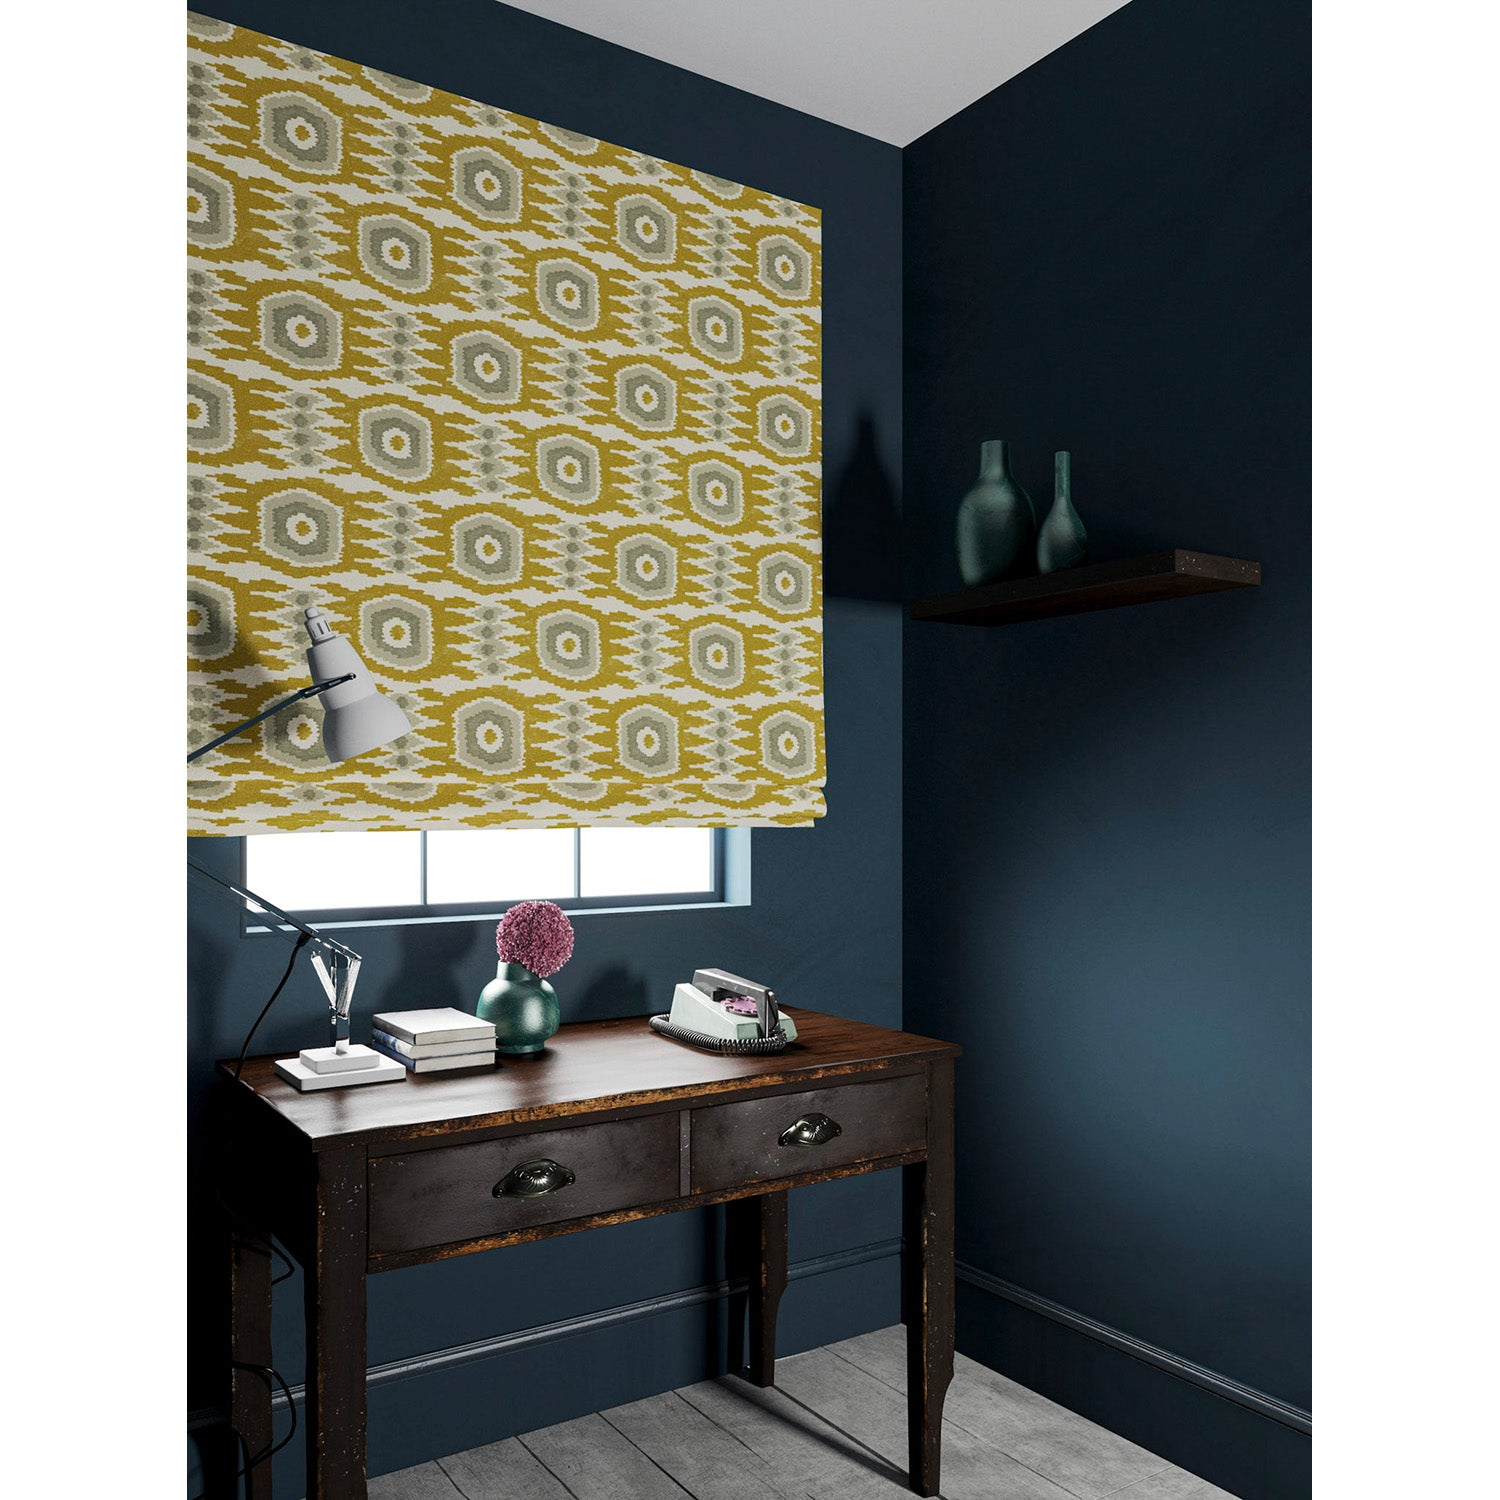 Blind in a ochre and grey velvet fabric with stain resistant finish and abstract print